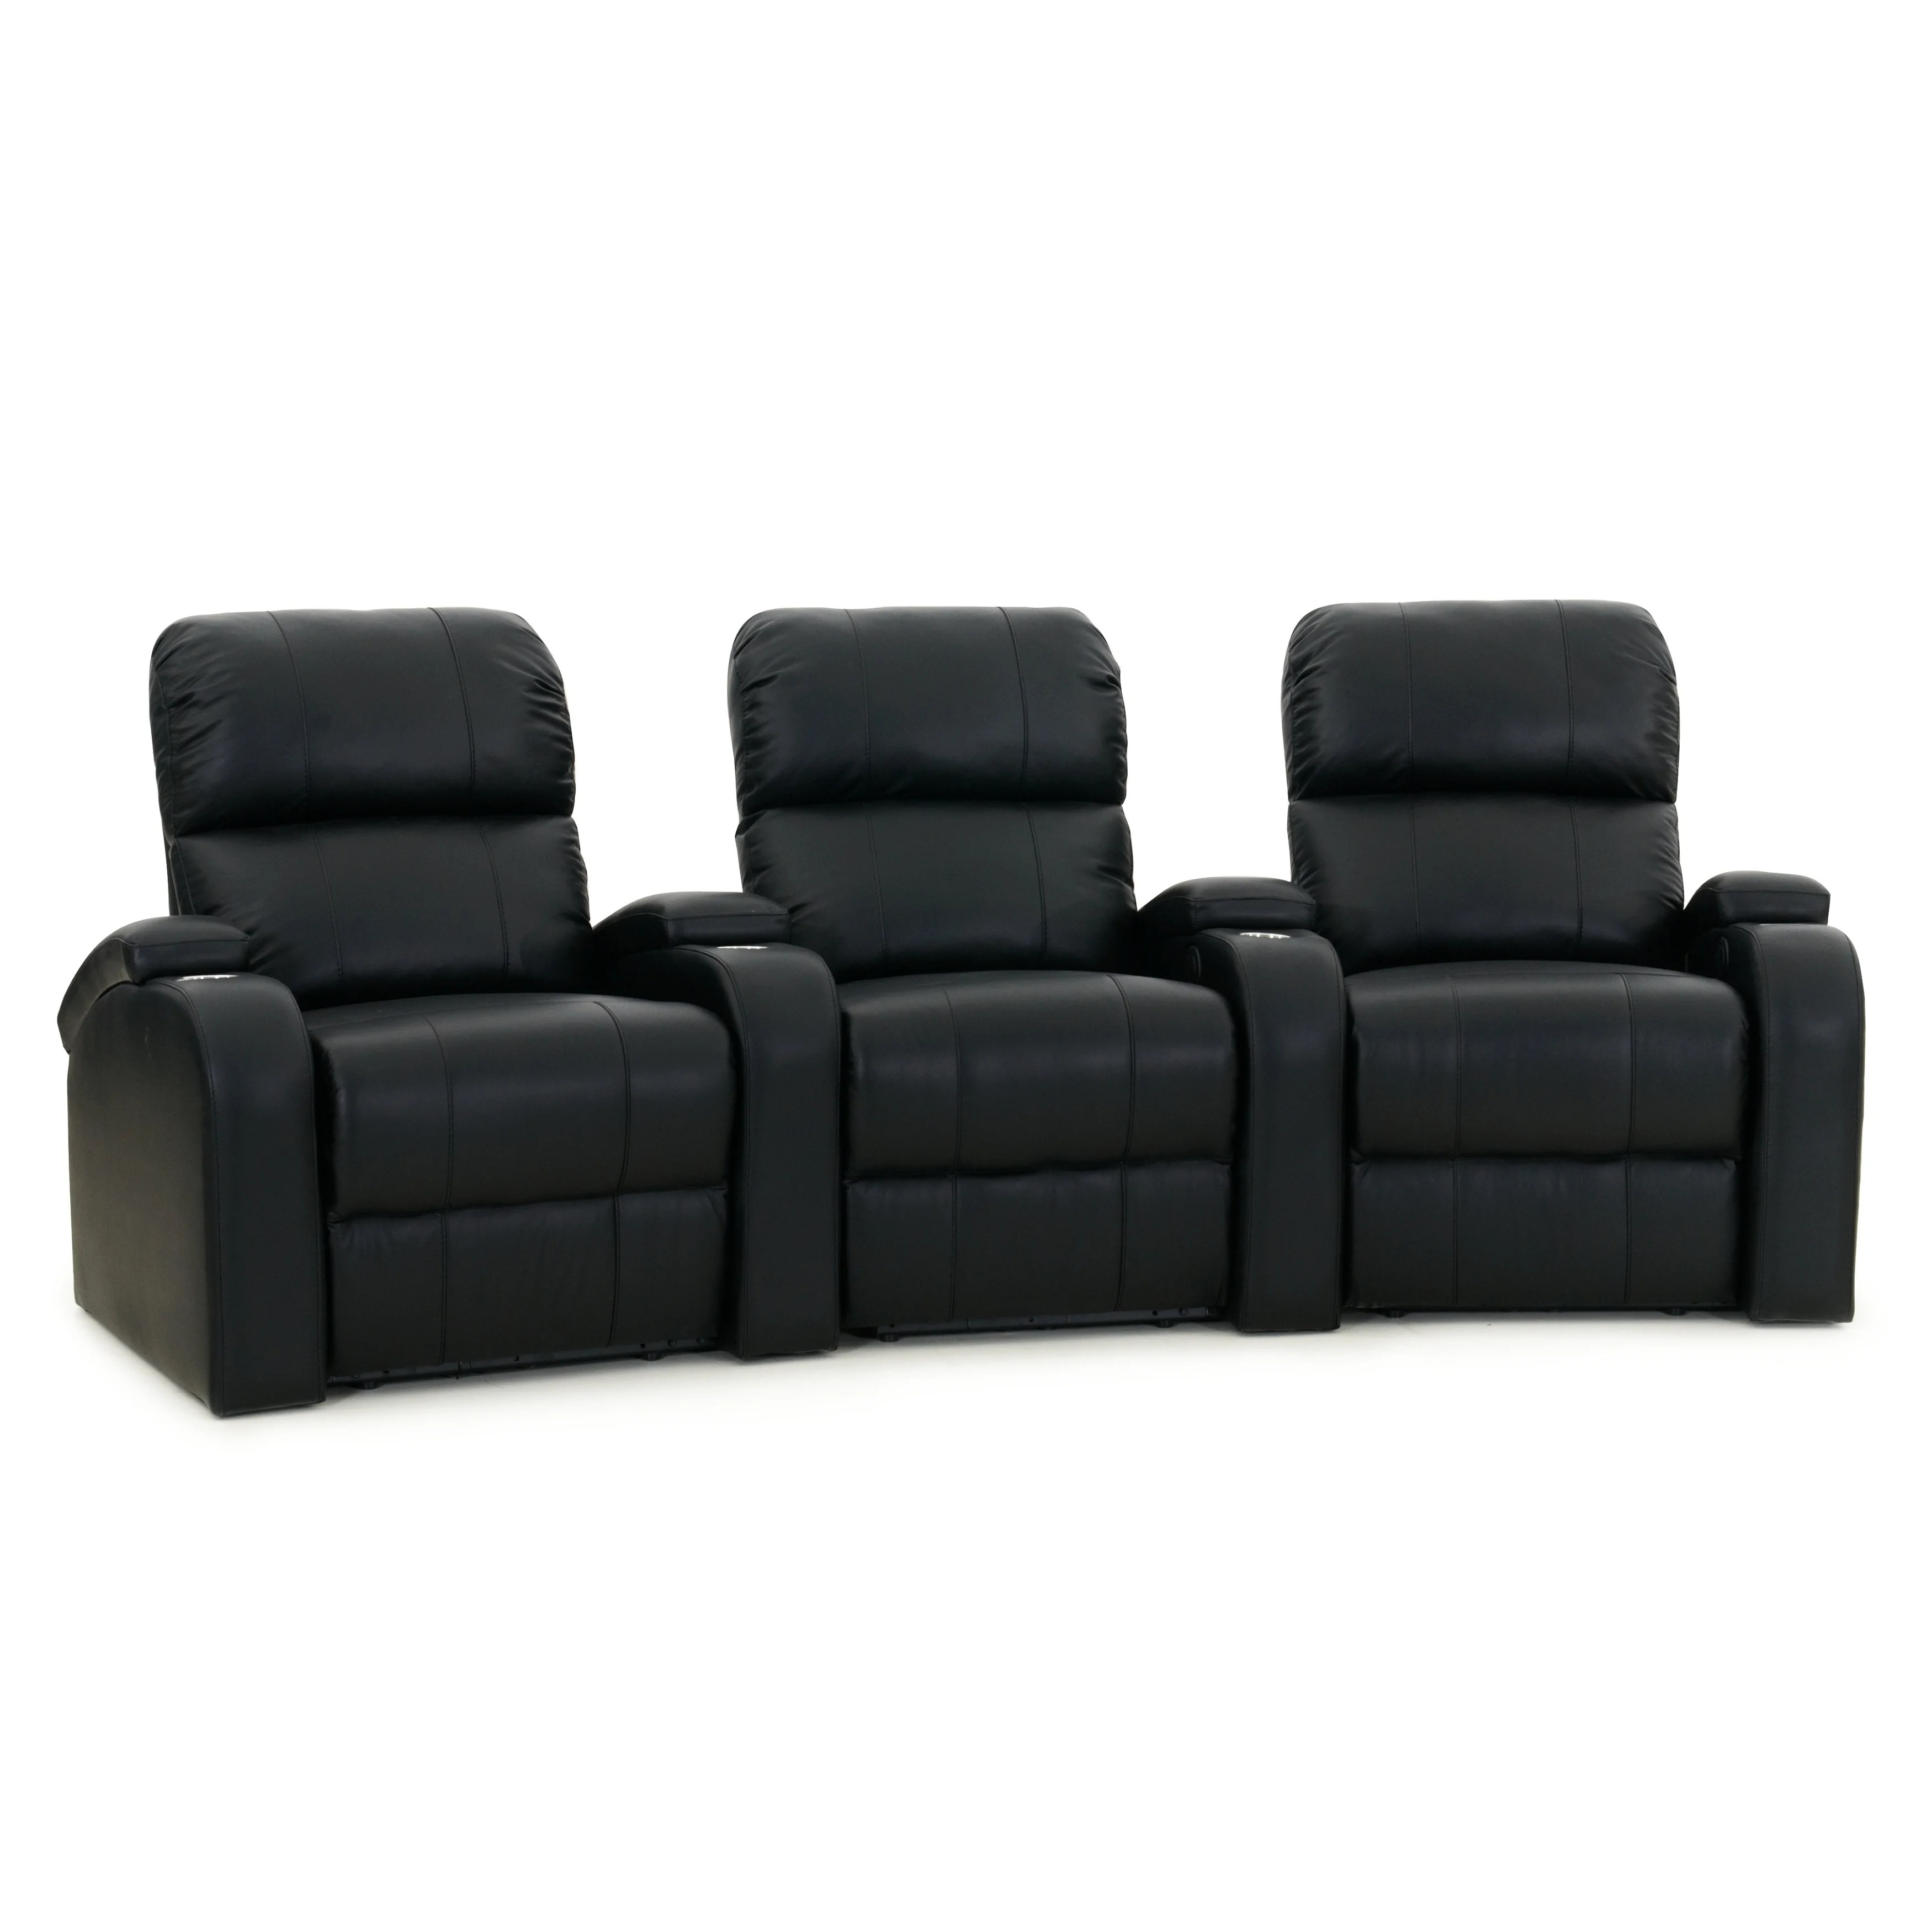 theater chairs best buy dorm chair bed recliner and rocking recliners online at